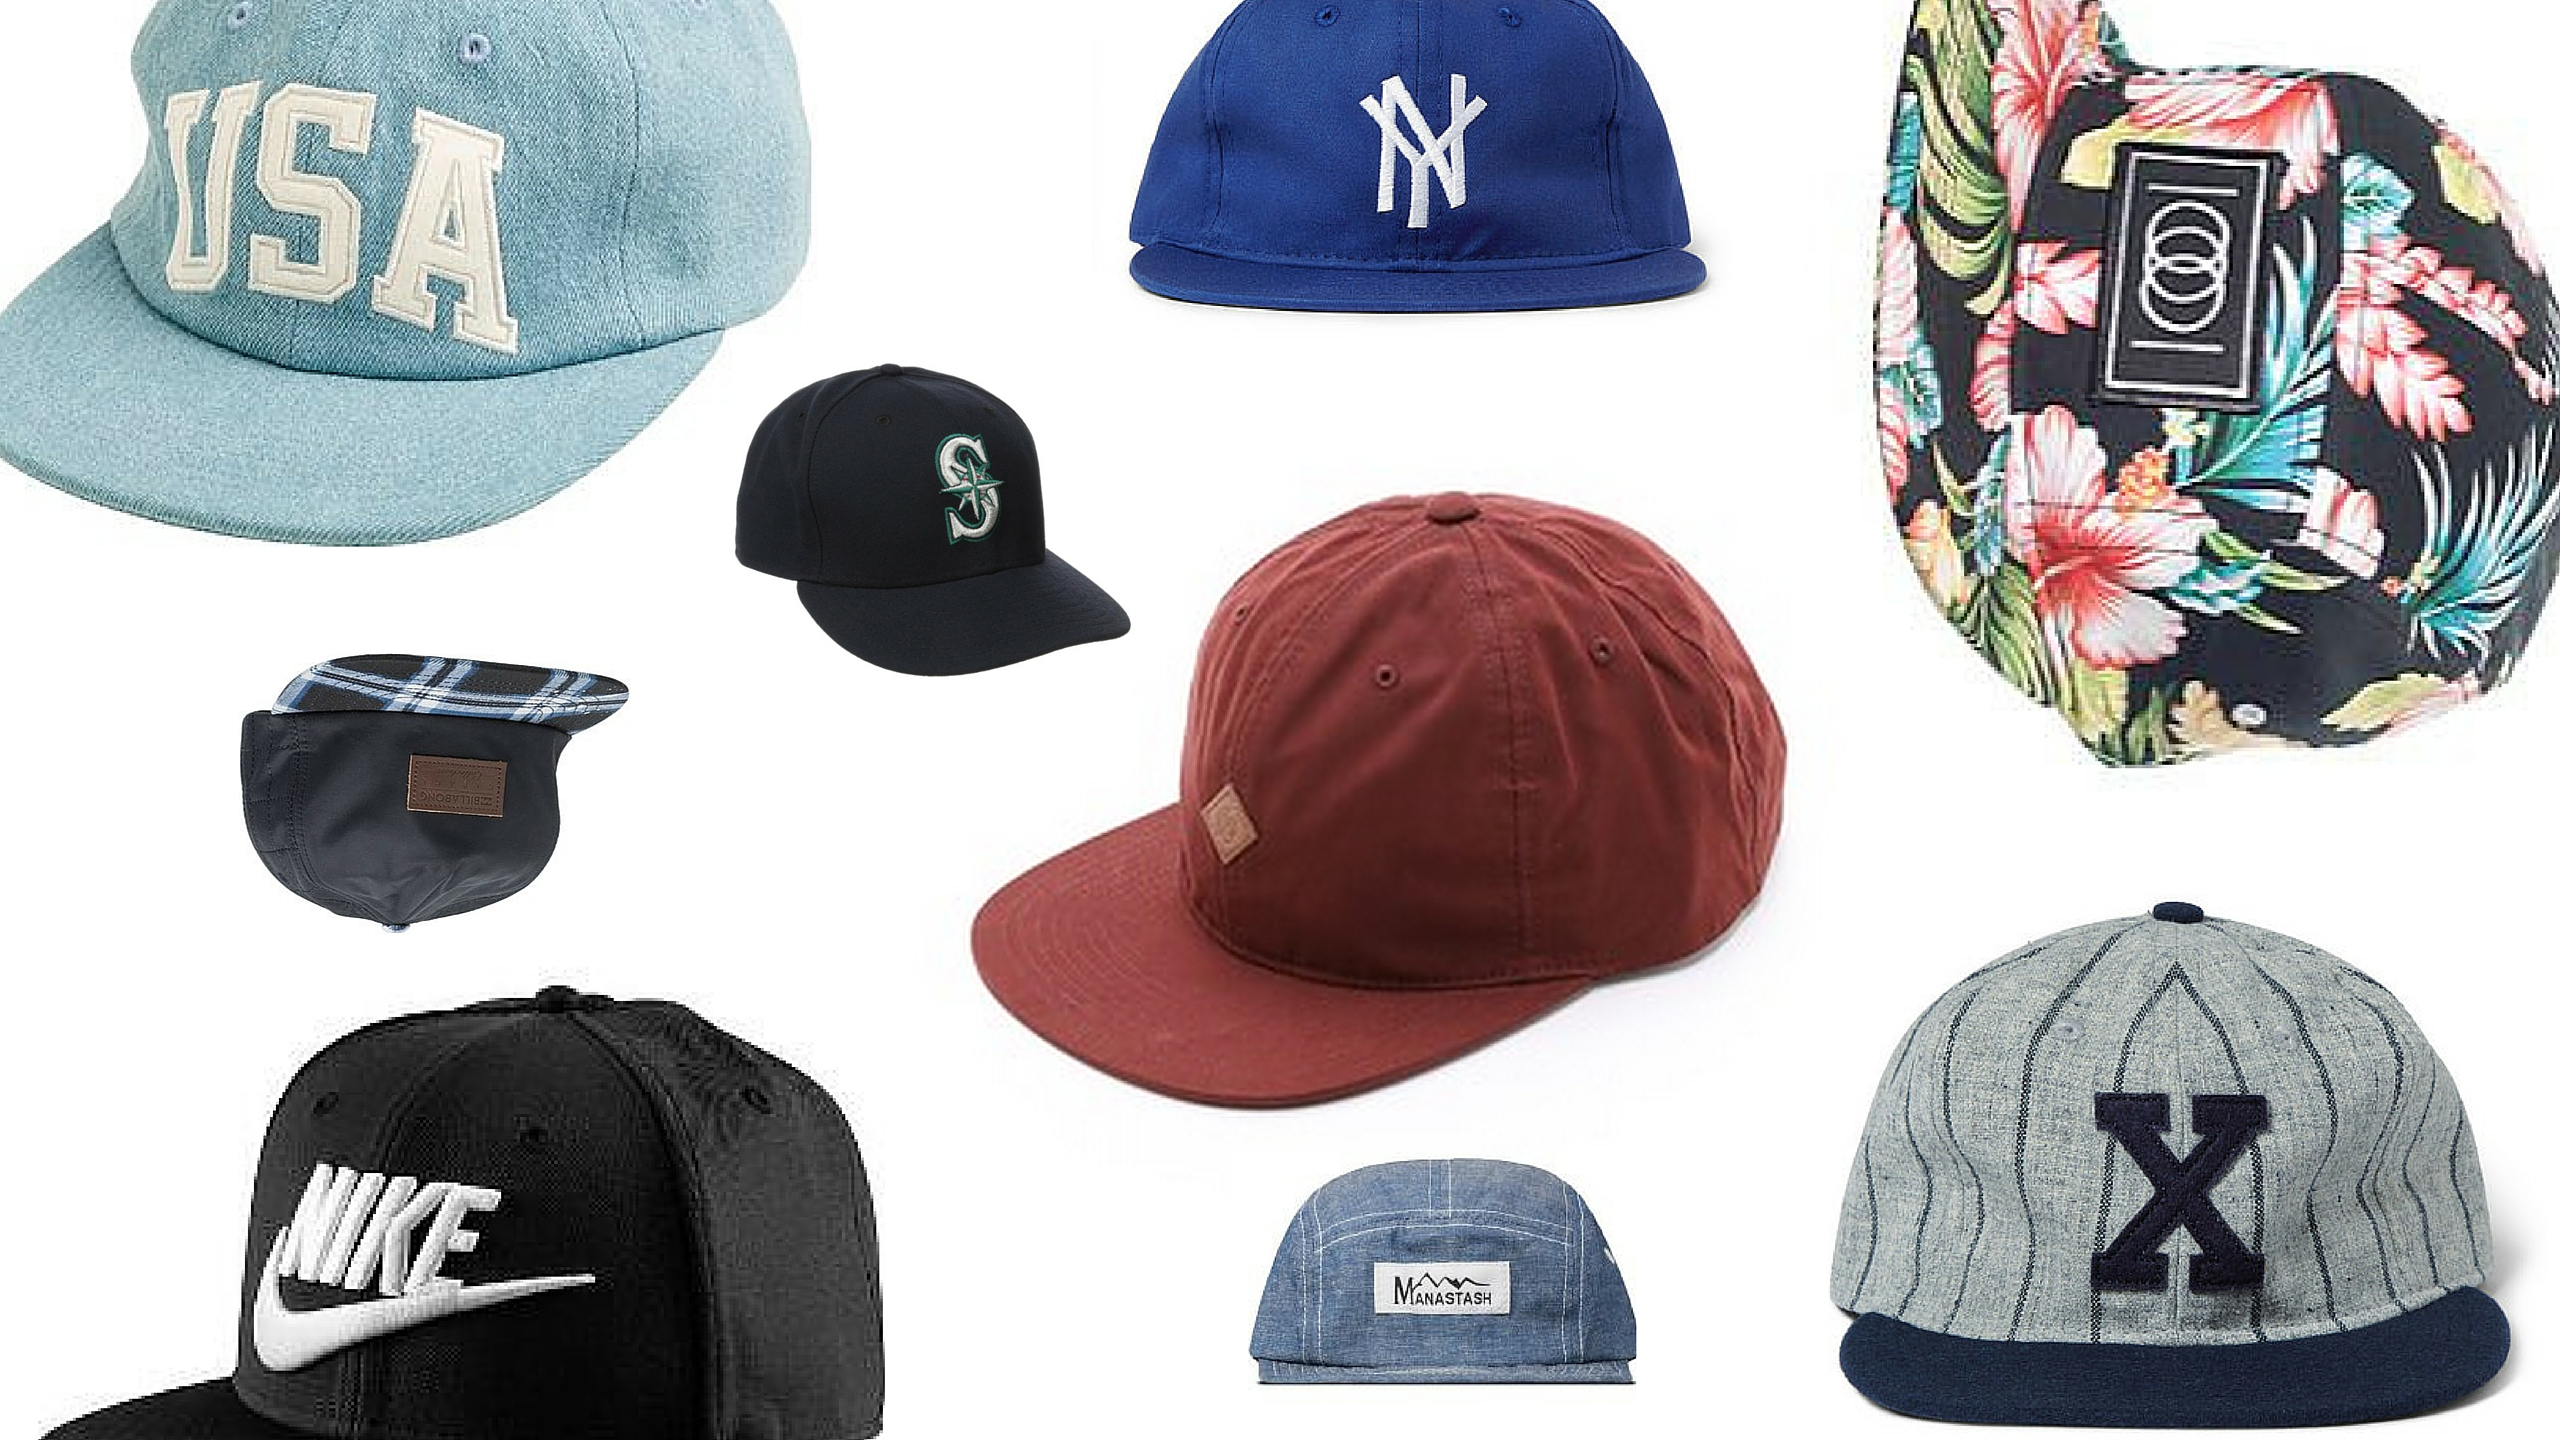 15079eaf5 Know Your Cap: 5 Baseball Cap Styles For Every Guy